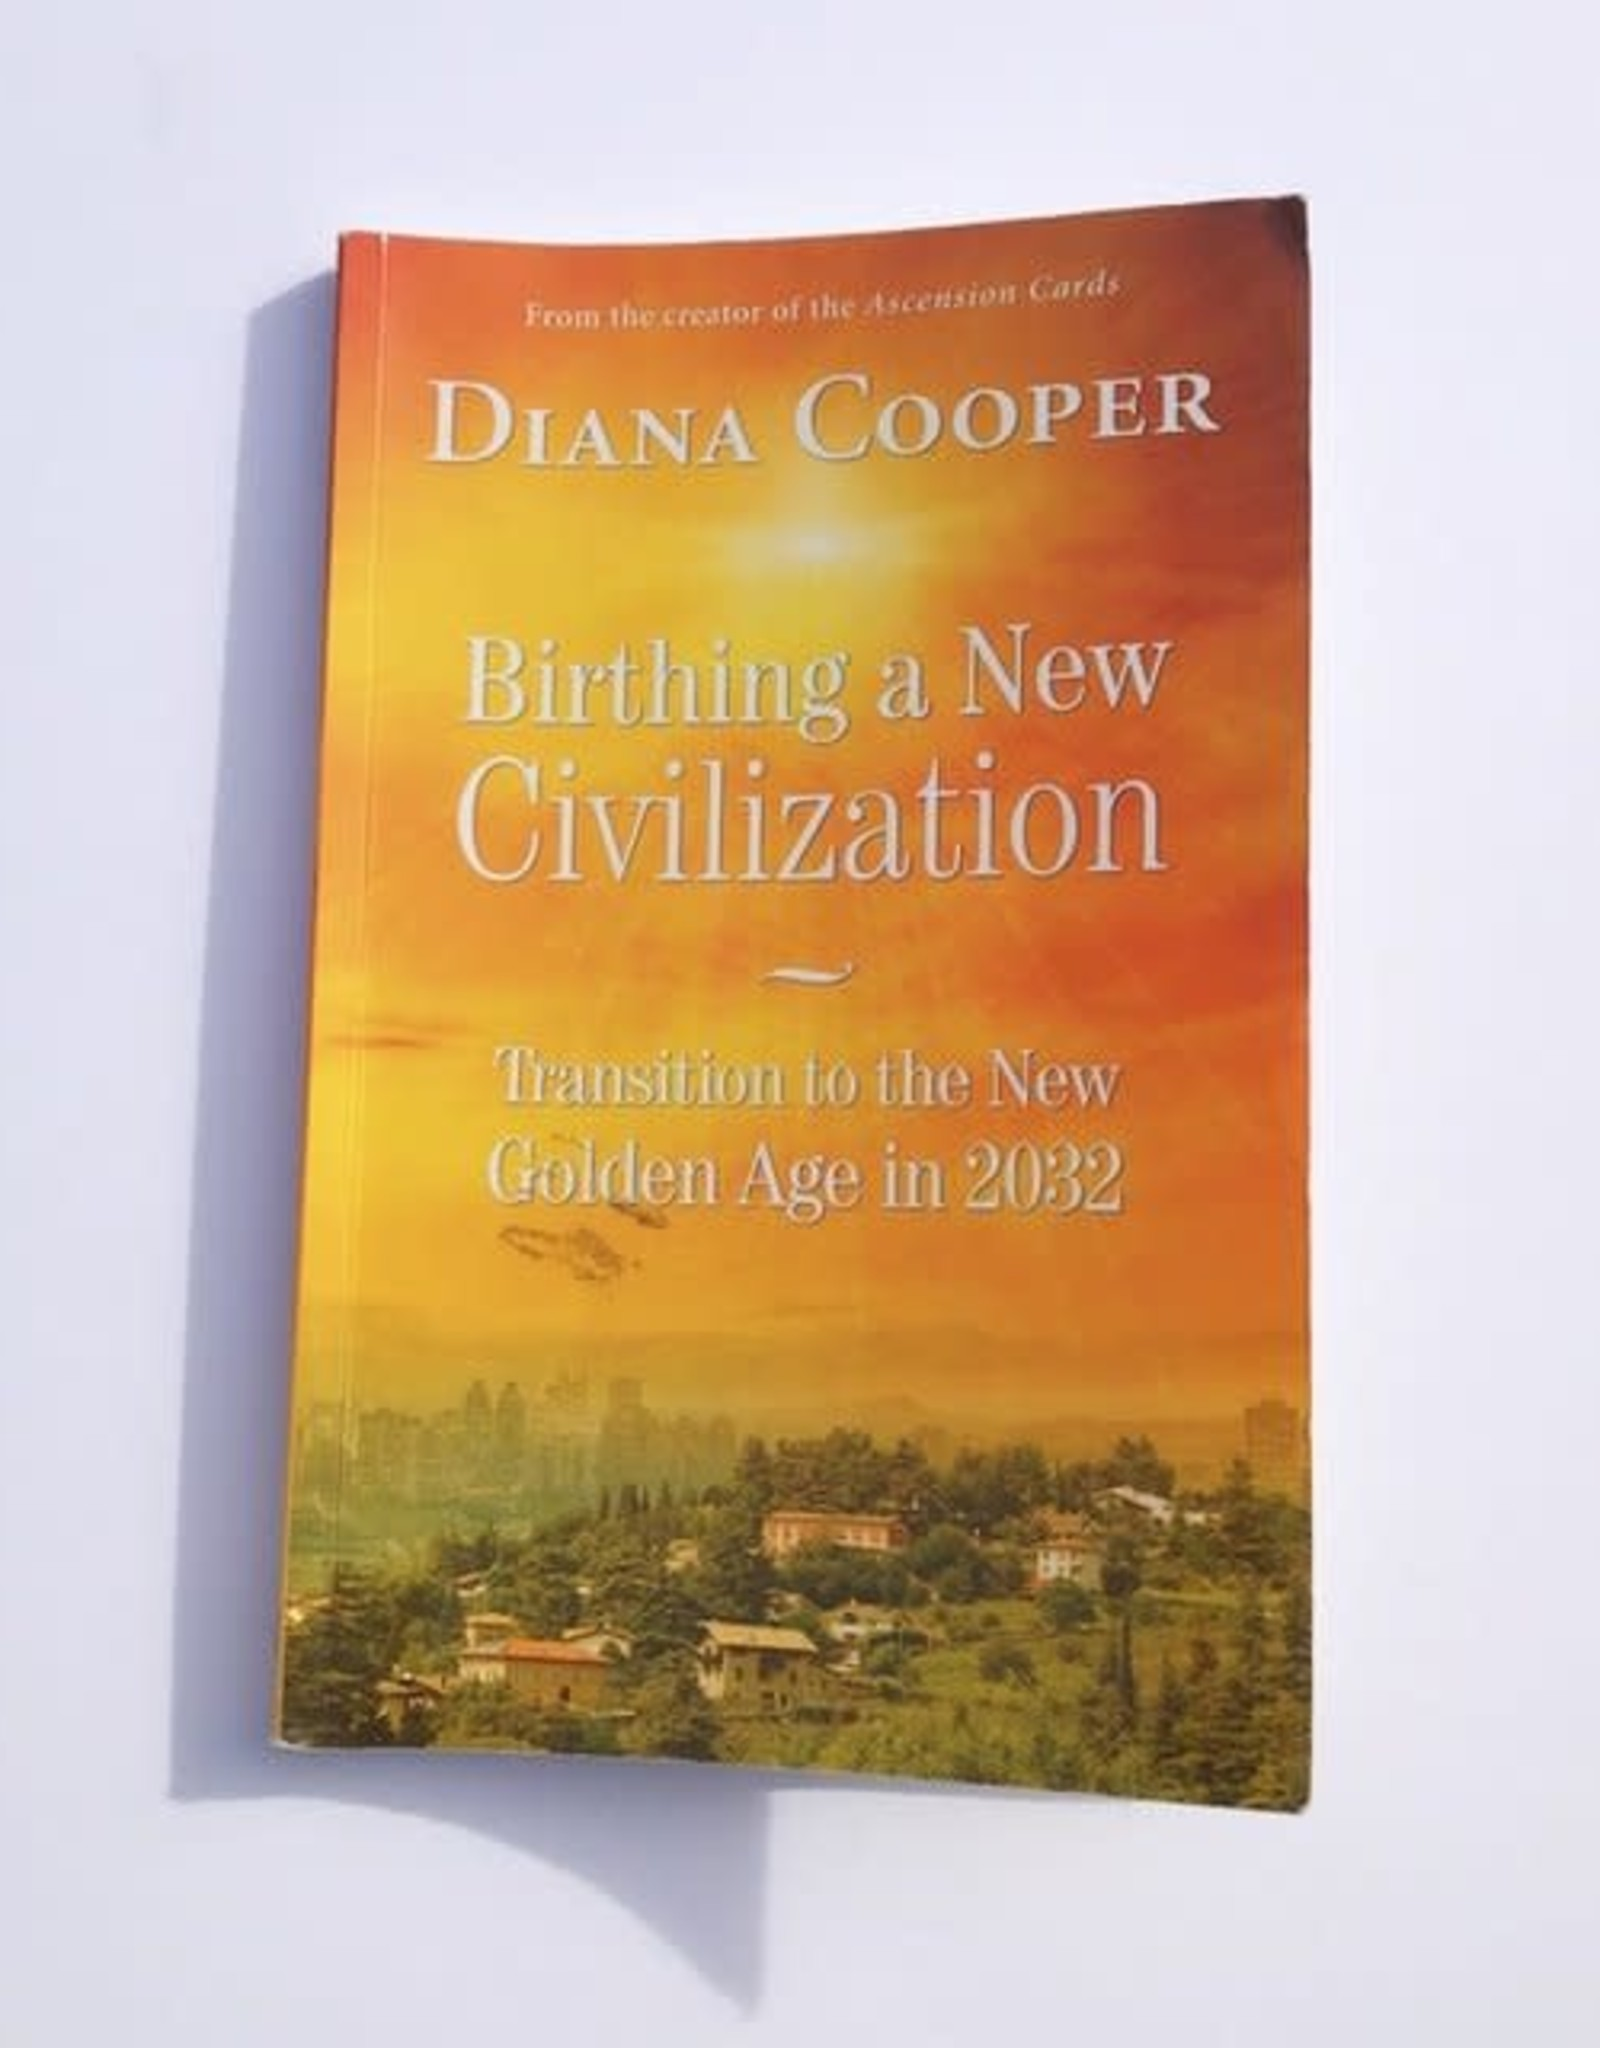 Diana Cooper Birthing a New Civilization by Diana Cooper